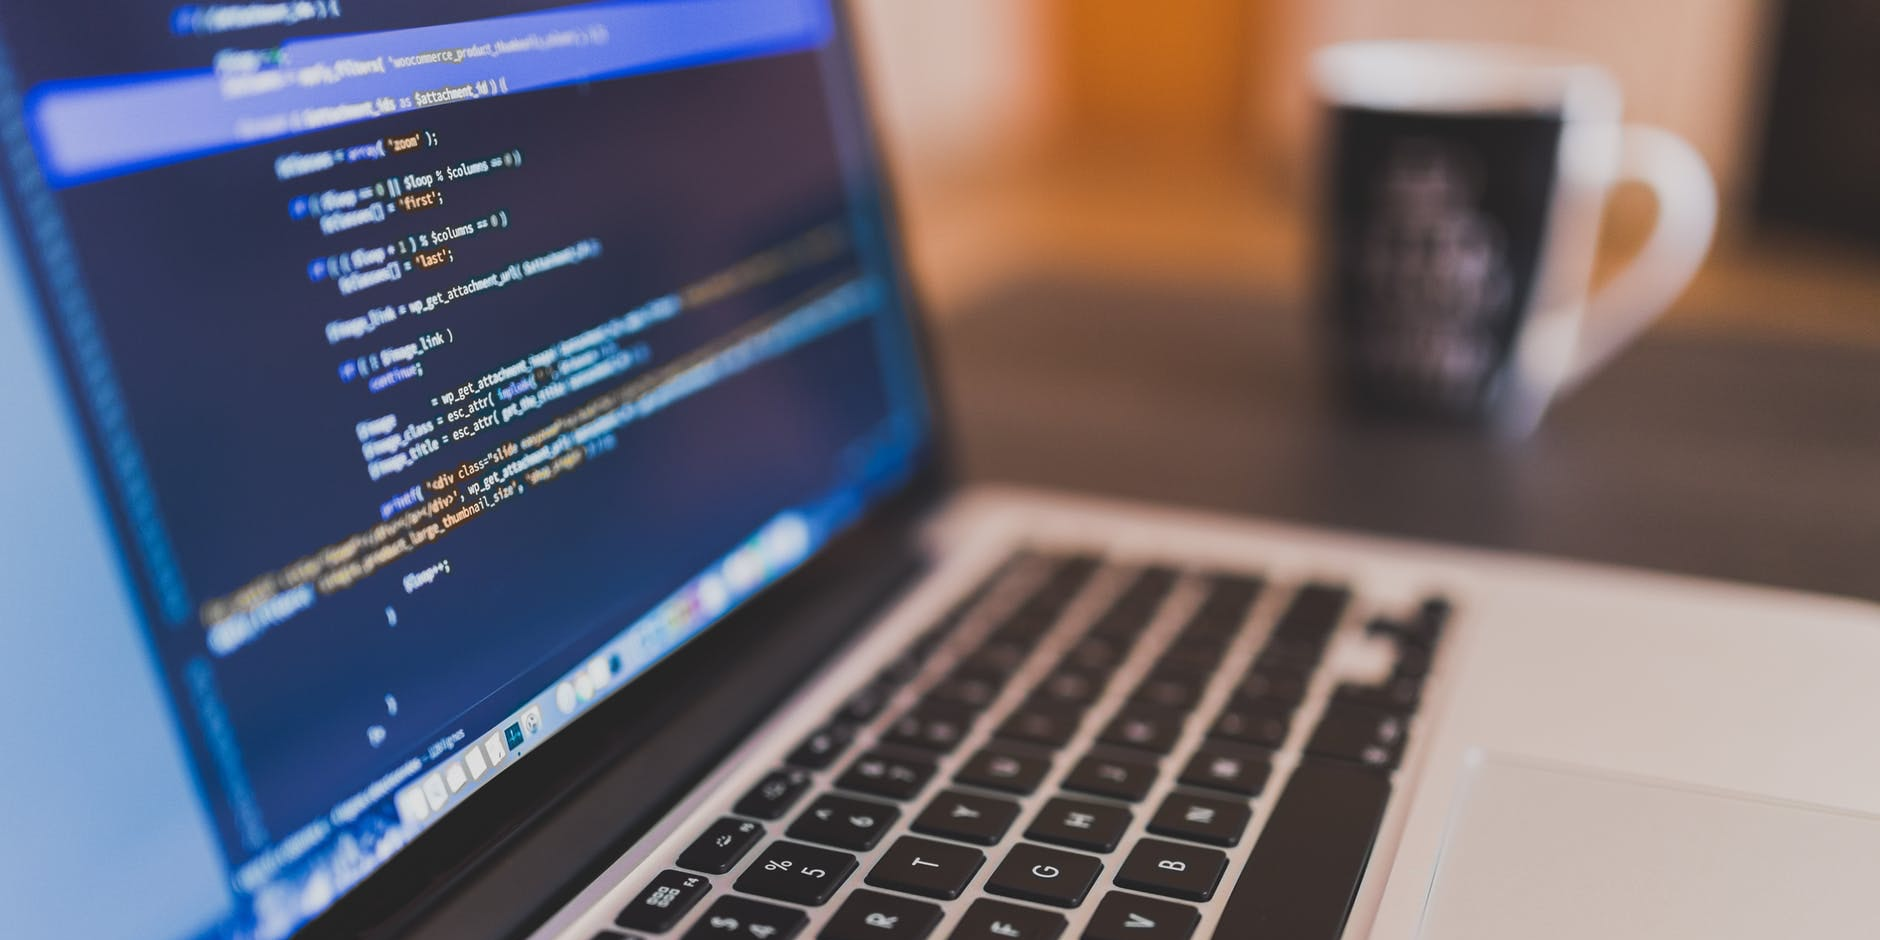 Learn Full-Stack Web Development With 80% Off This E-Degree